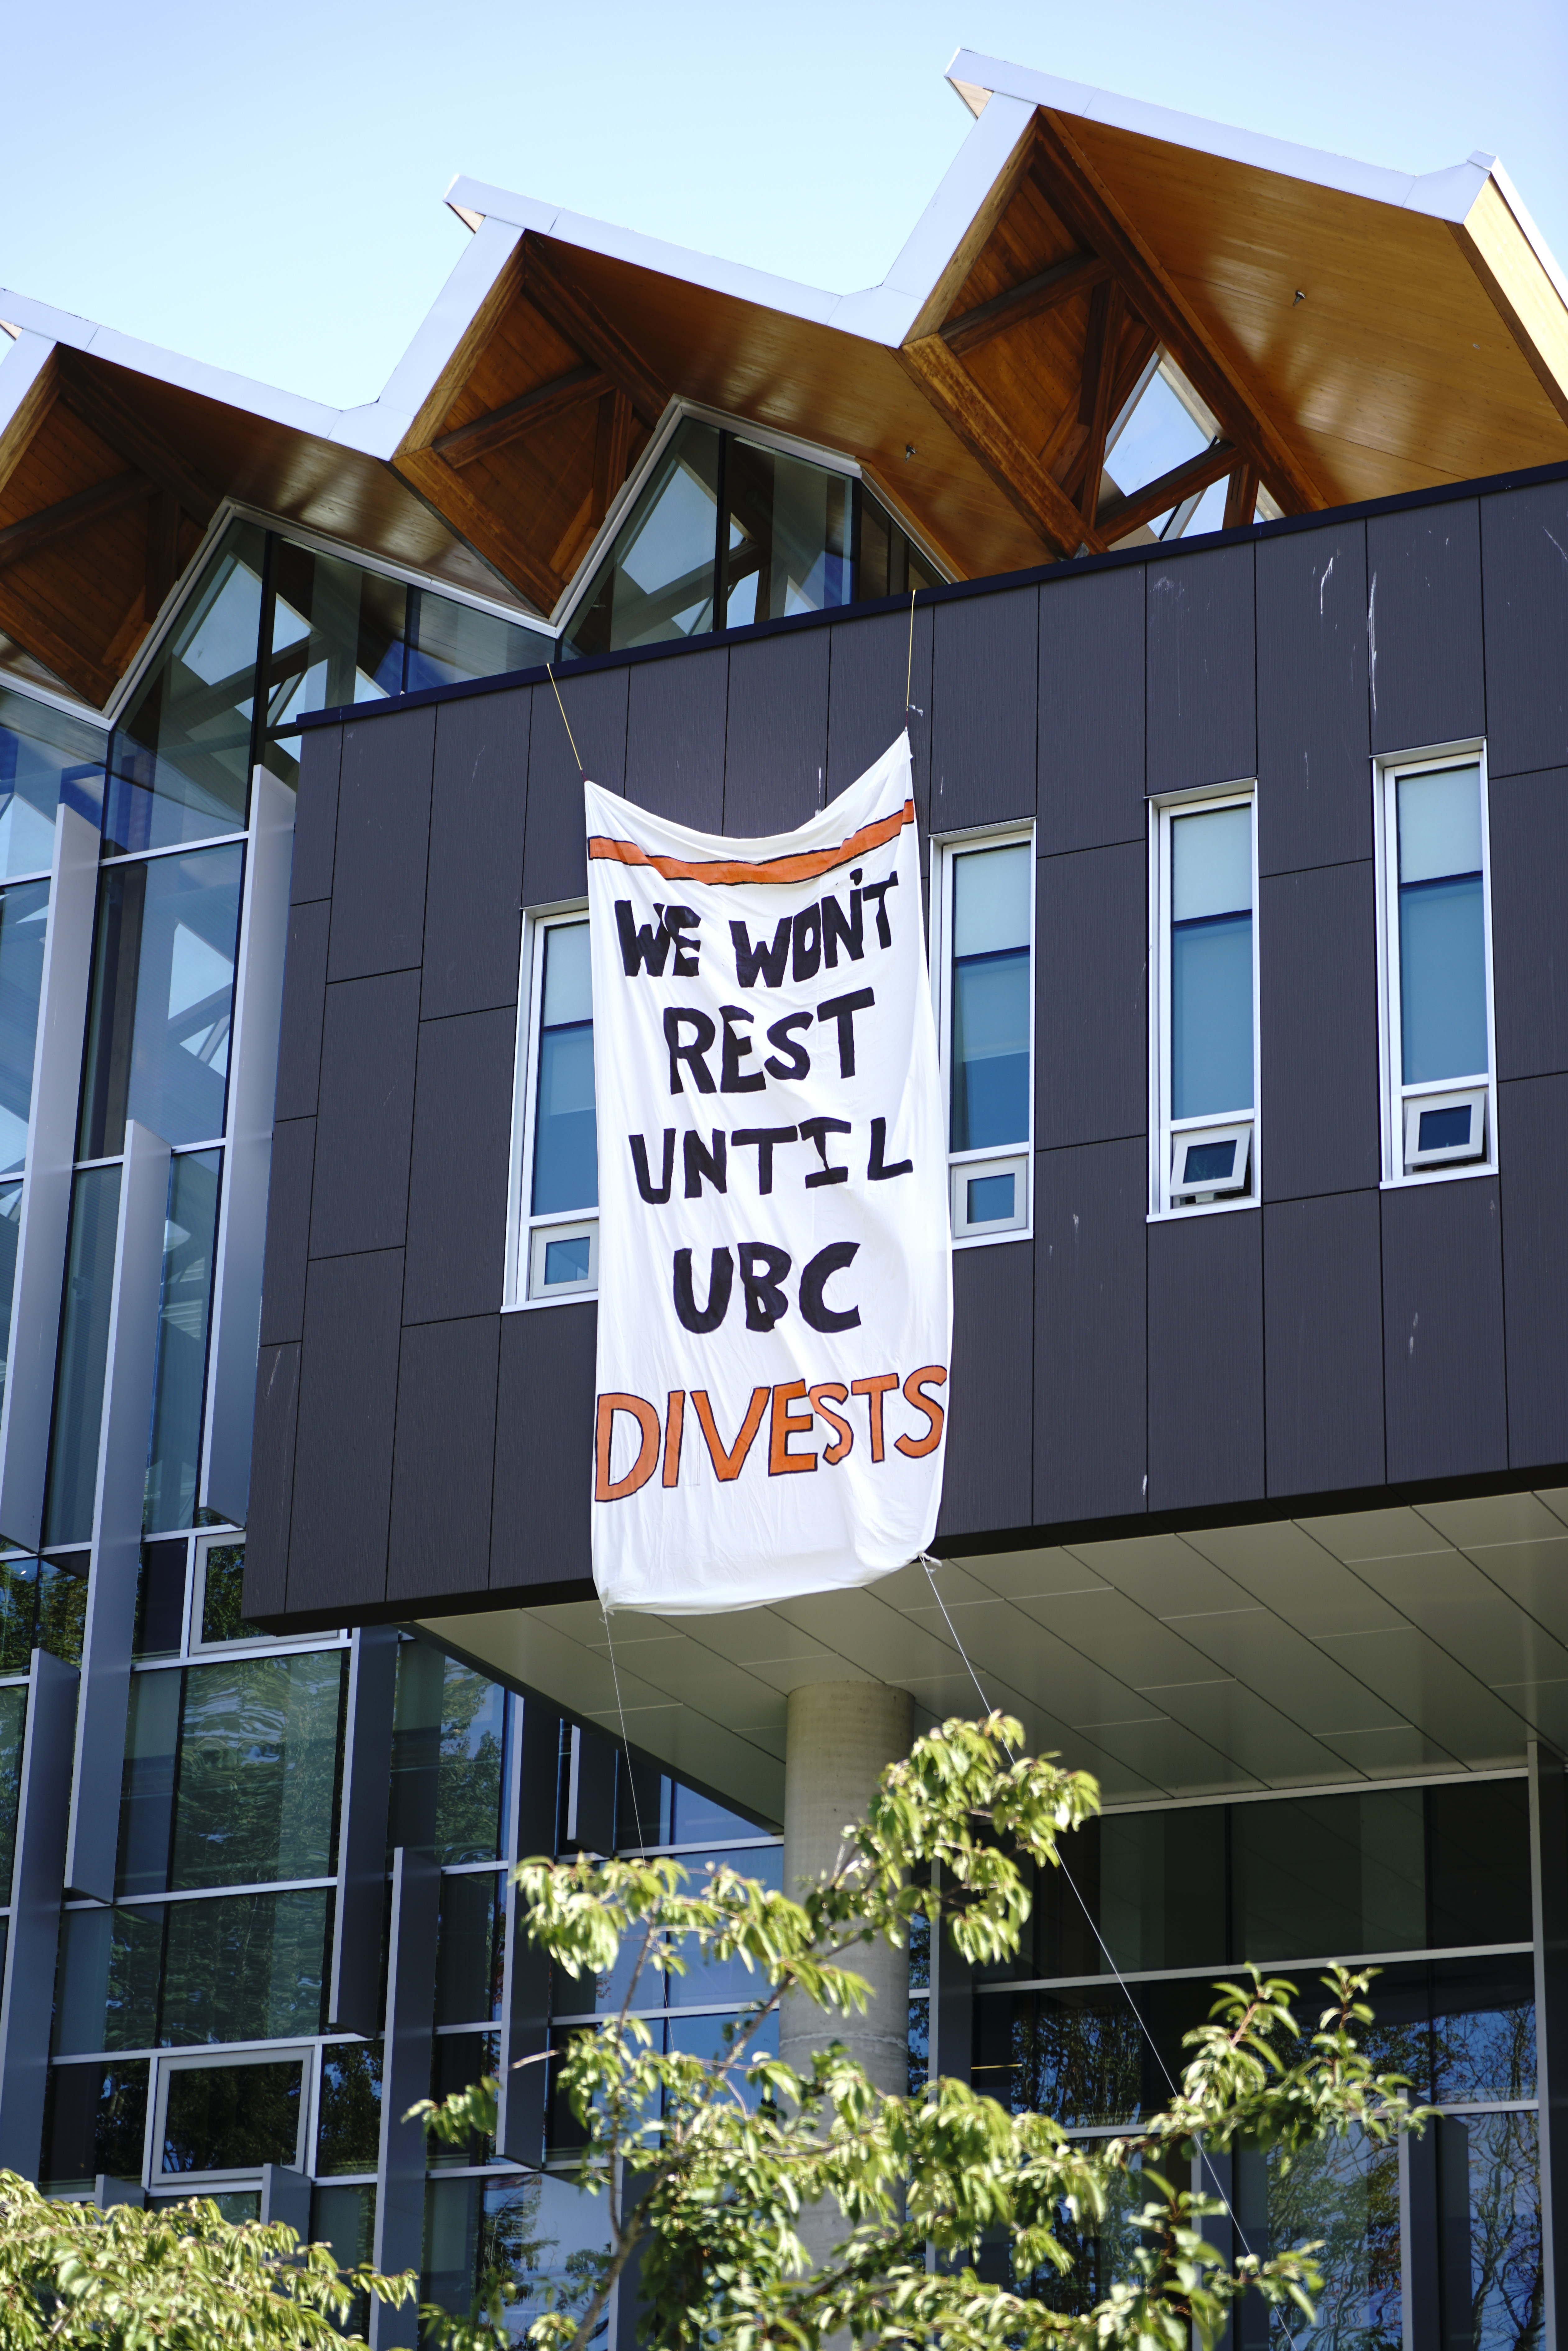 Climate Stike participants hang a banner over the Nest calling on UBC to divest from fossil fuels.